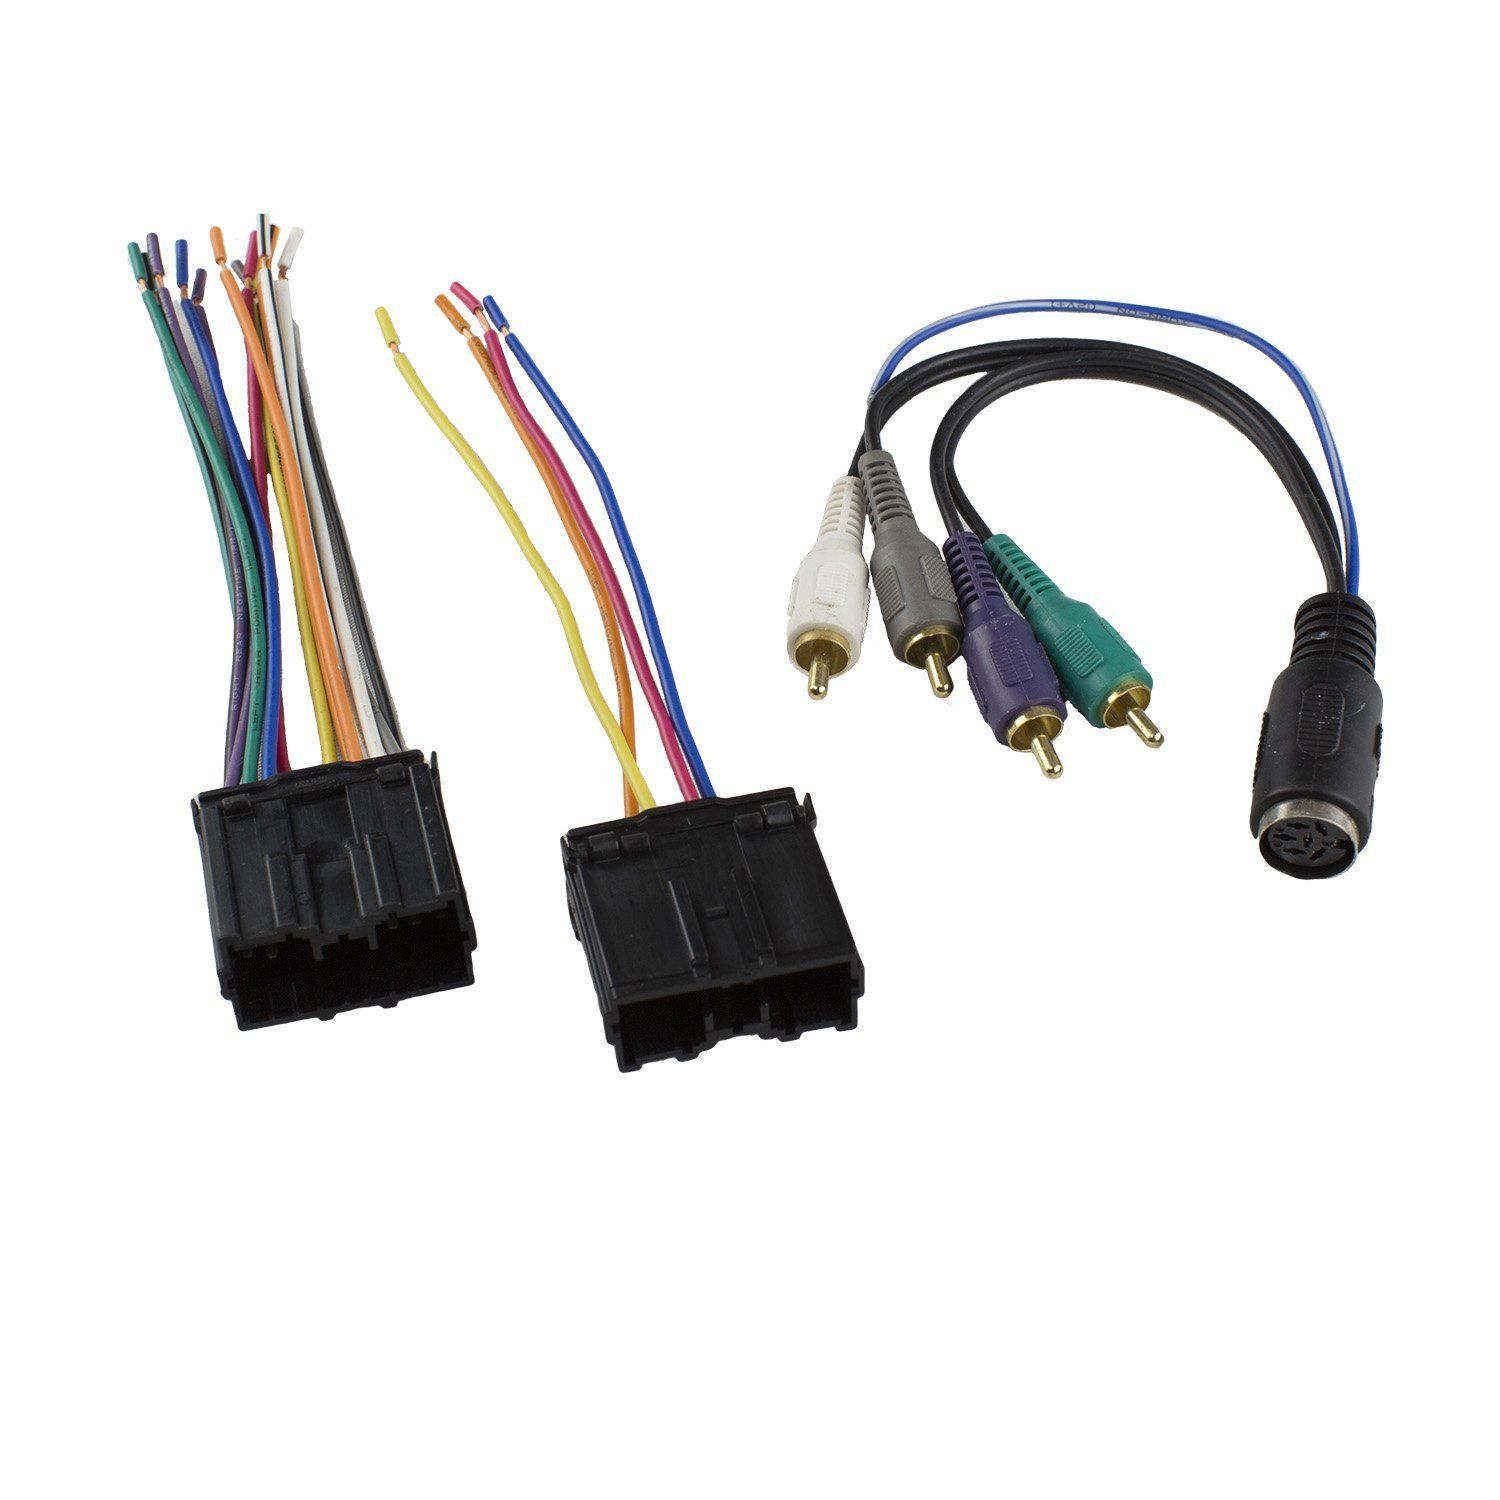 Novosonics Wiring Harness for Mitsubishi 4 Speaker With Amp Integration  1994 - Fits existing connector in your vehicle. No cutting existing car  wiring ...